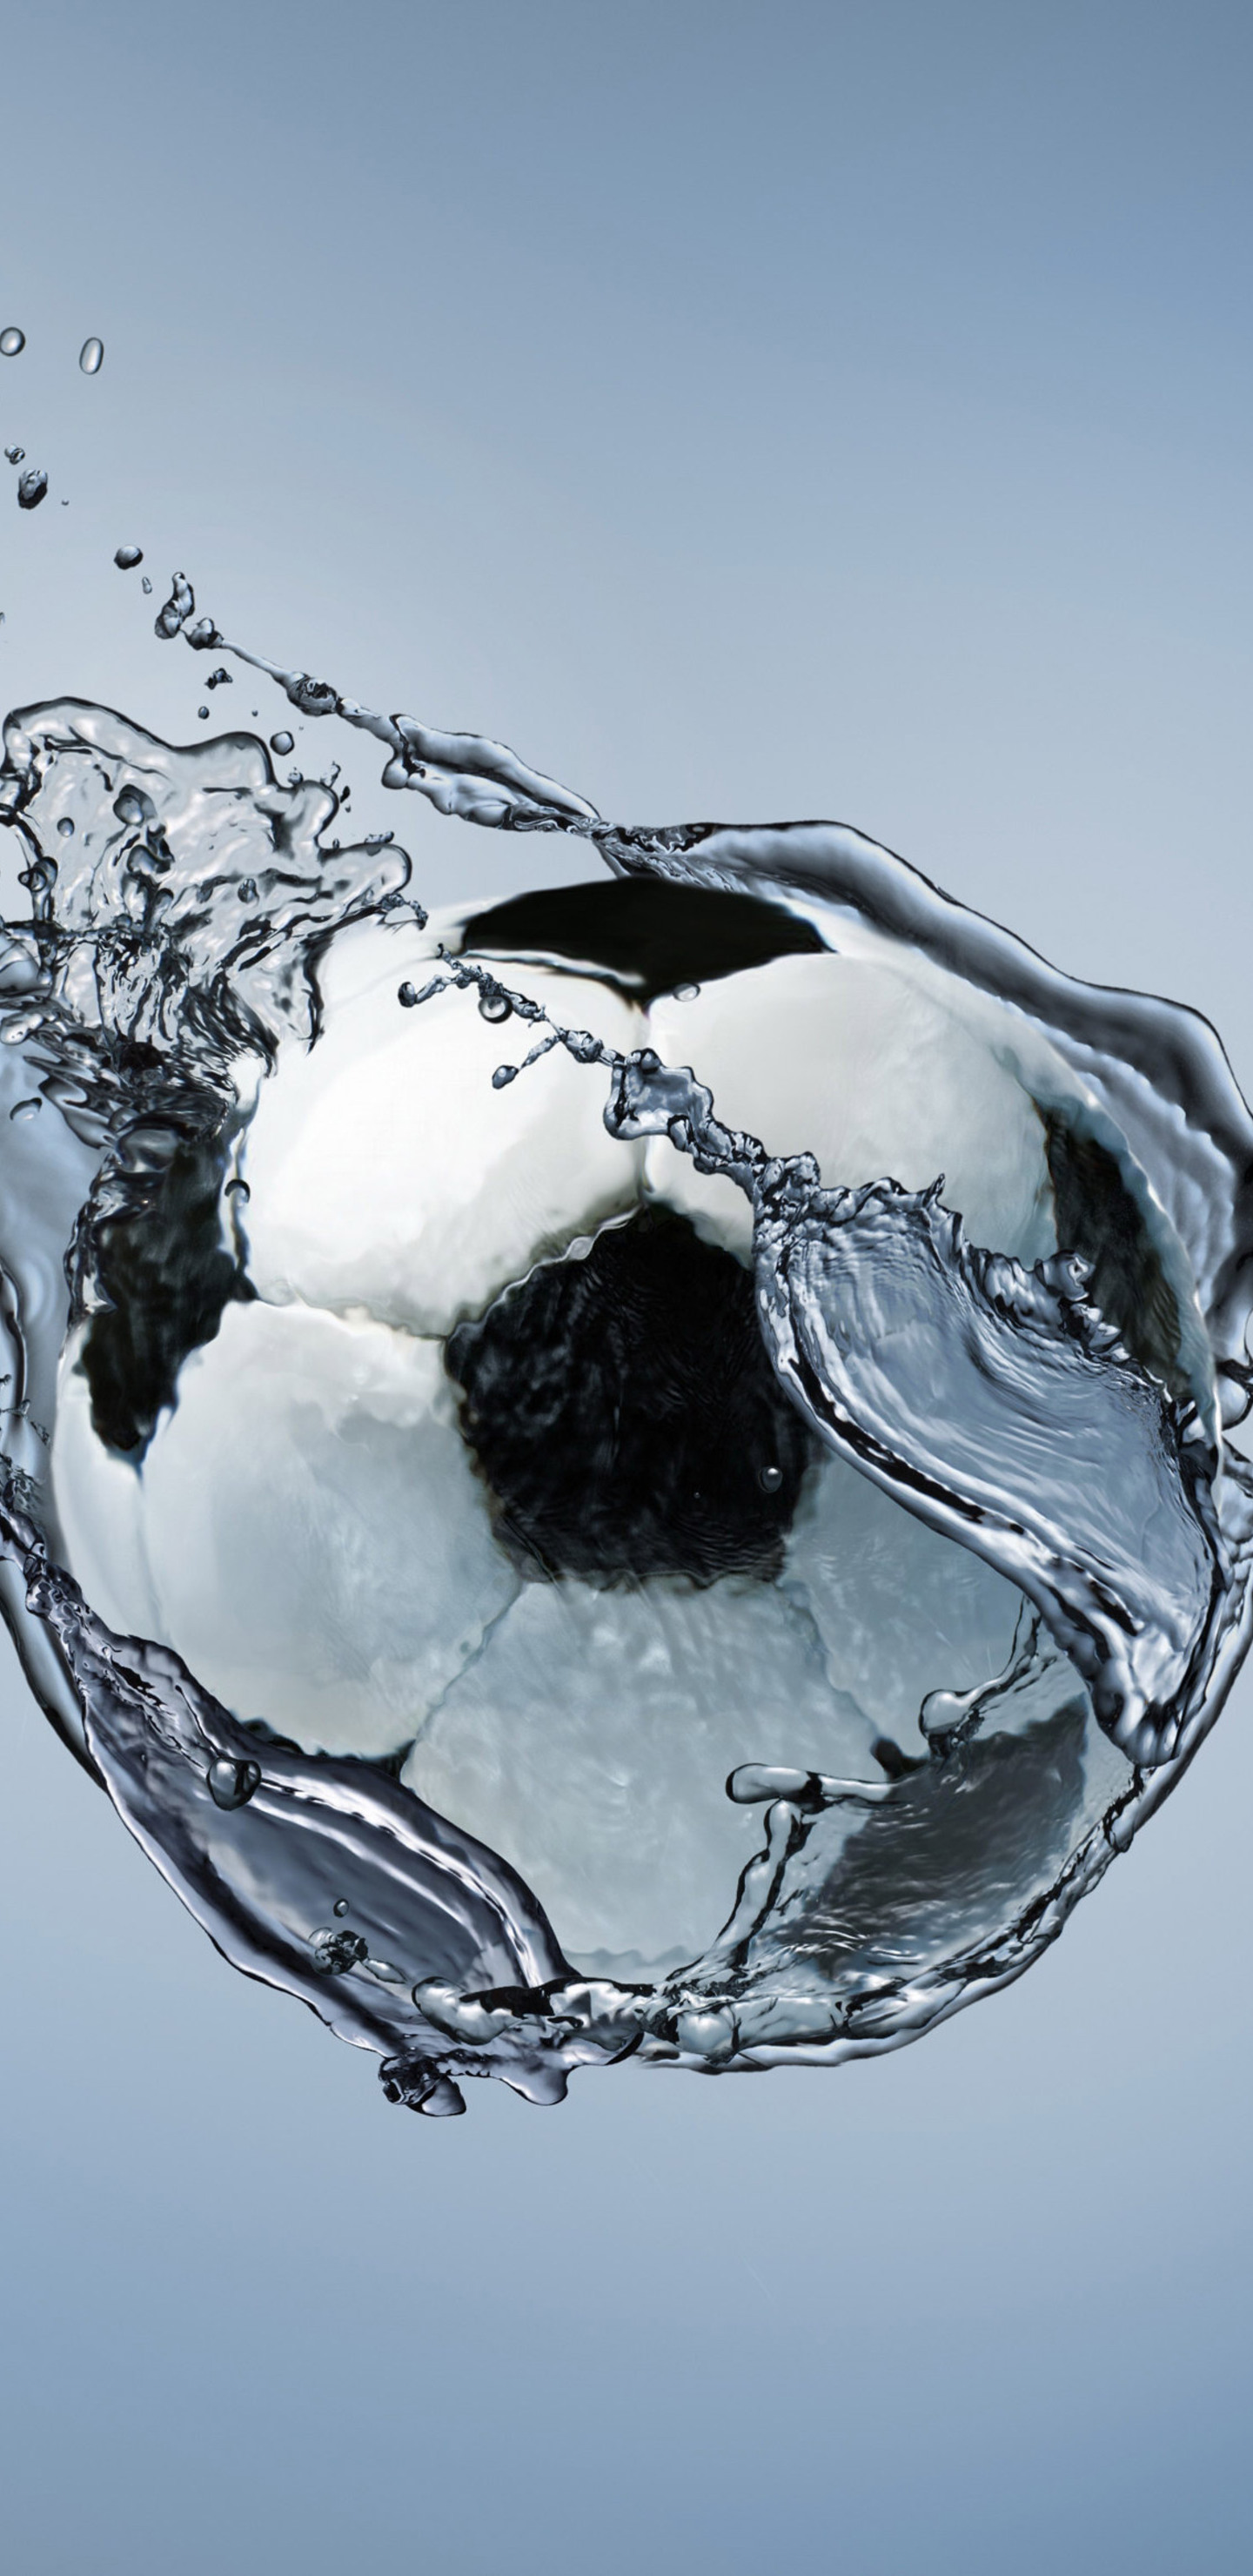 football-water-splash-lu.jpg